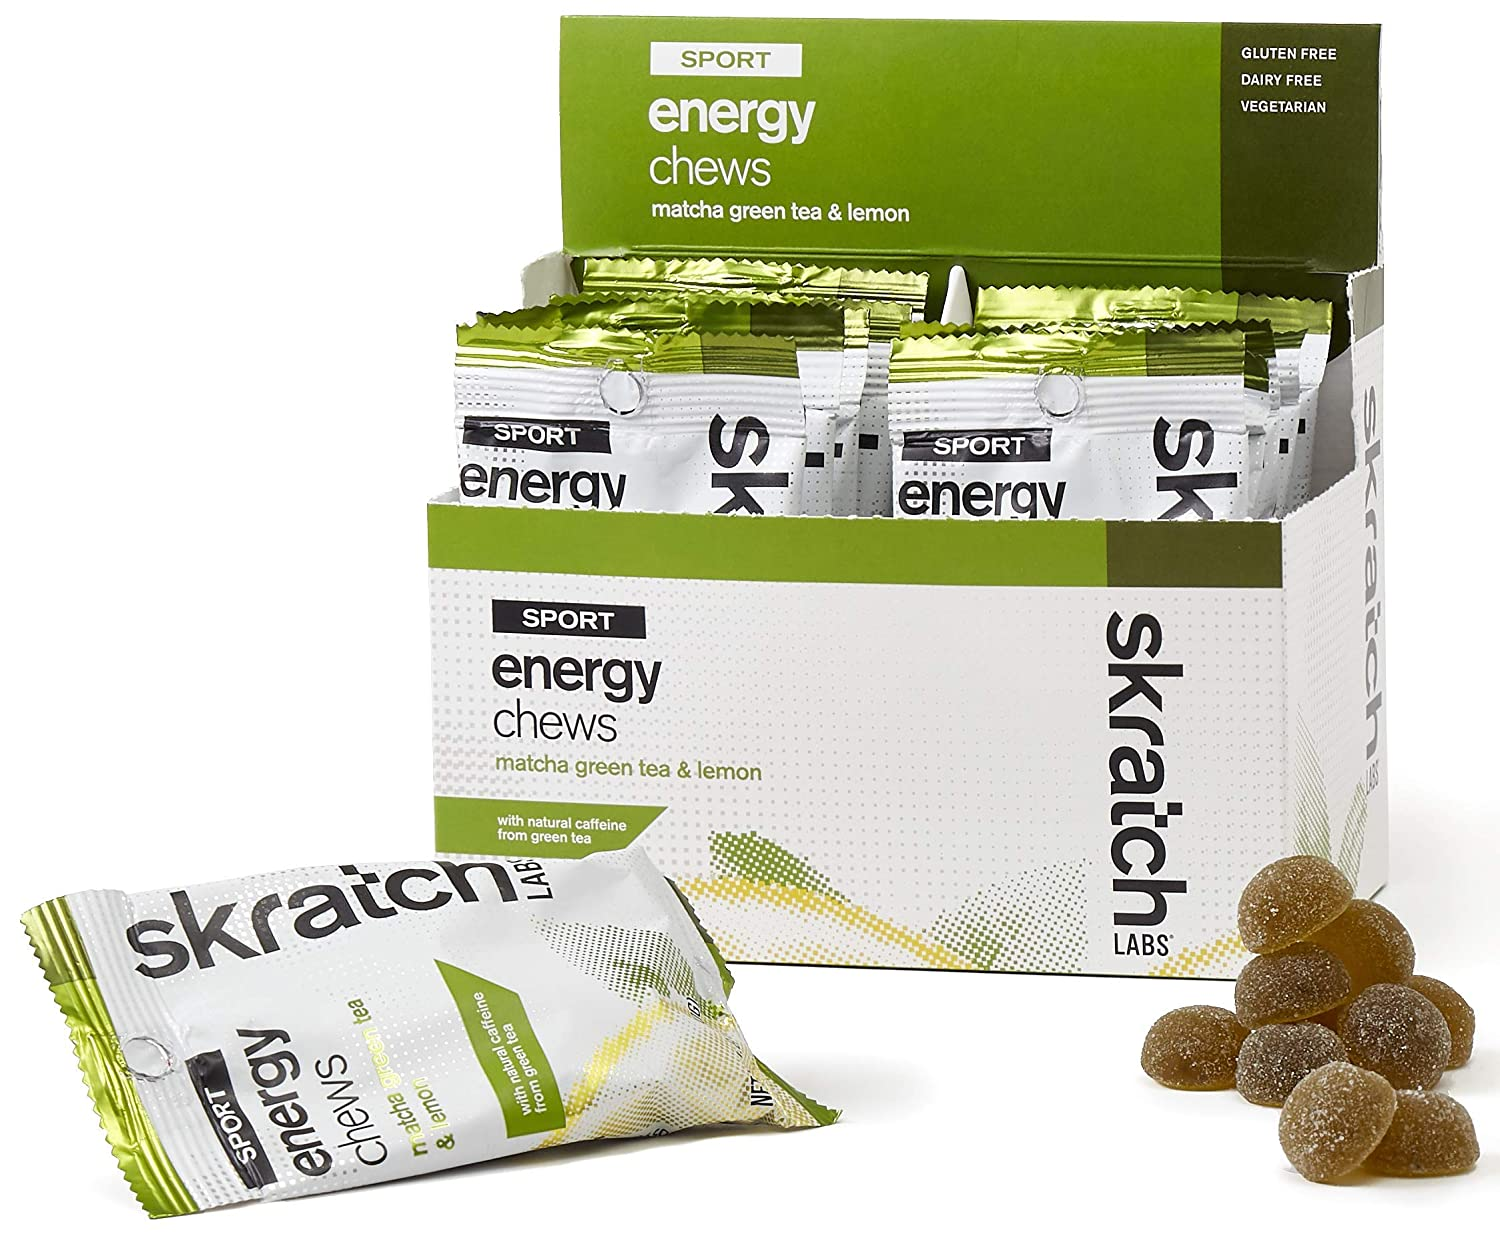 SKRATCH LABS Sport Energy Chews, Matcha Green Tea and Lemon (10 pack) - Developed for Athletes and Sports Performance, Gluten Free, Dairy Free, Vegan